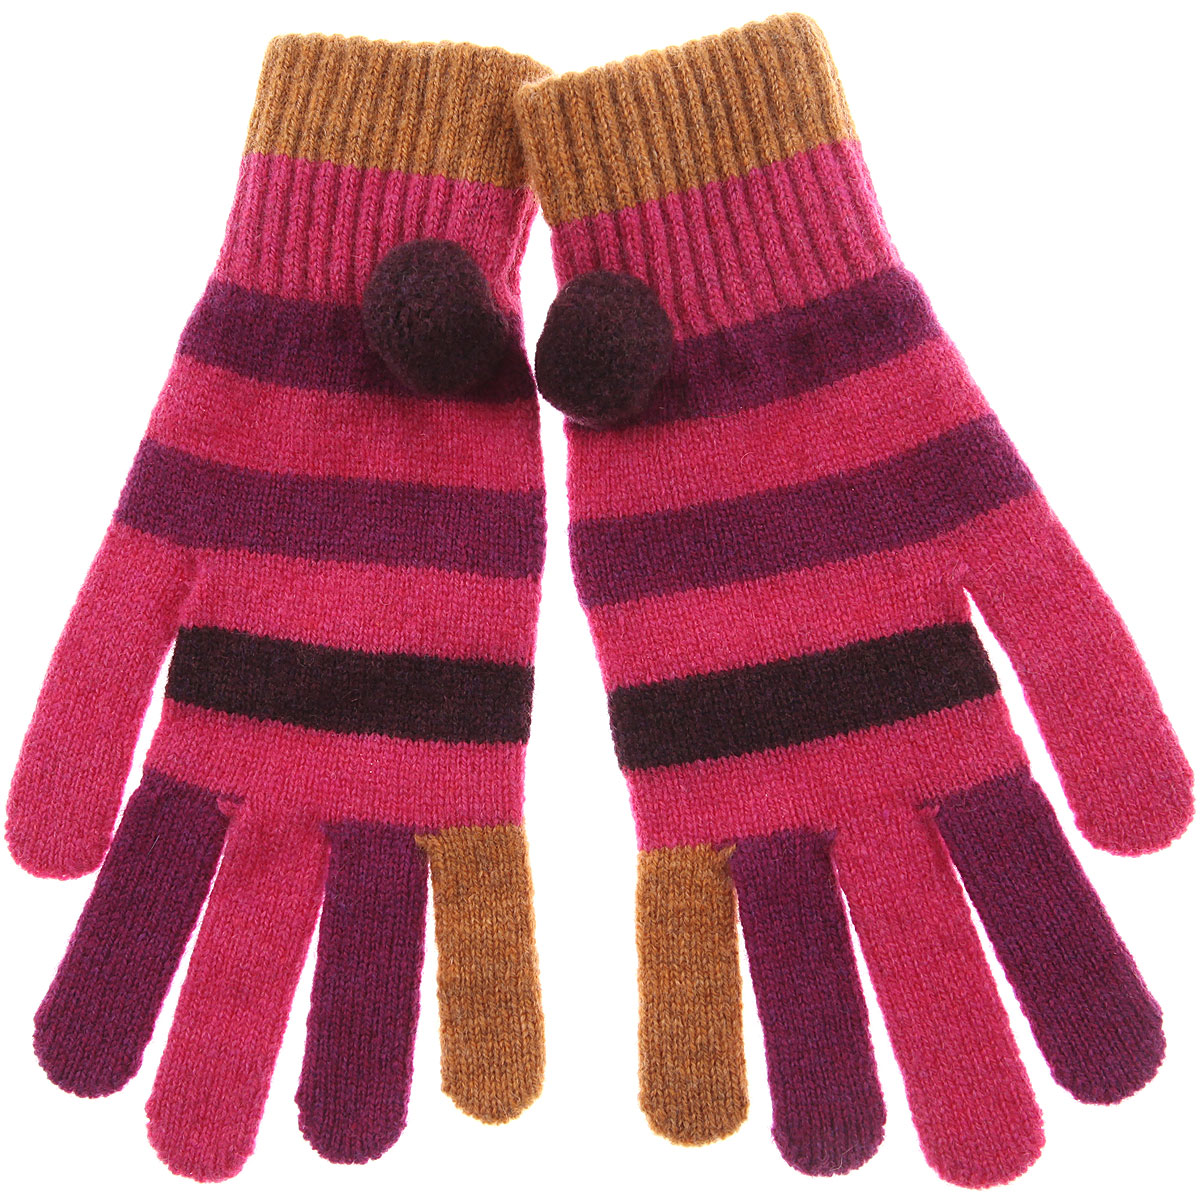 Paul Smith Gloves for Women Pink USA - GOOFASH